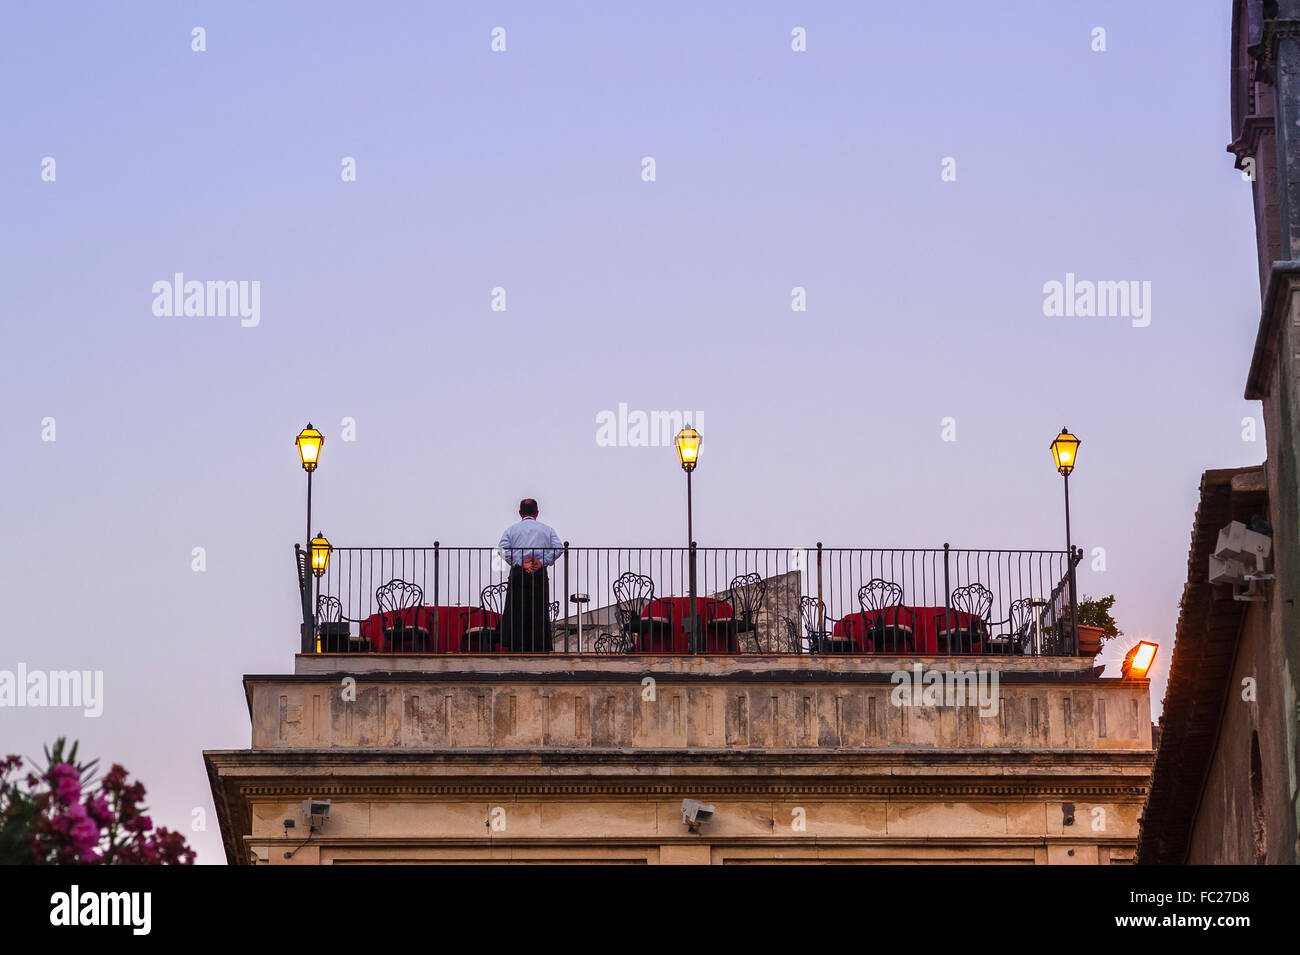 Rooftop terrace restaurant, a lone waiter stands ready for evening diners to arrive at a roof top terrace on a restaurant - Stock Image